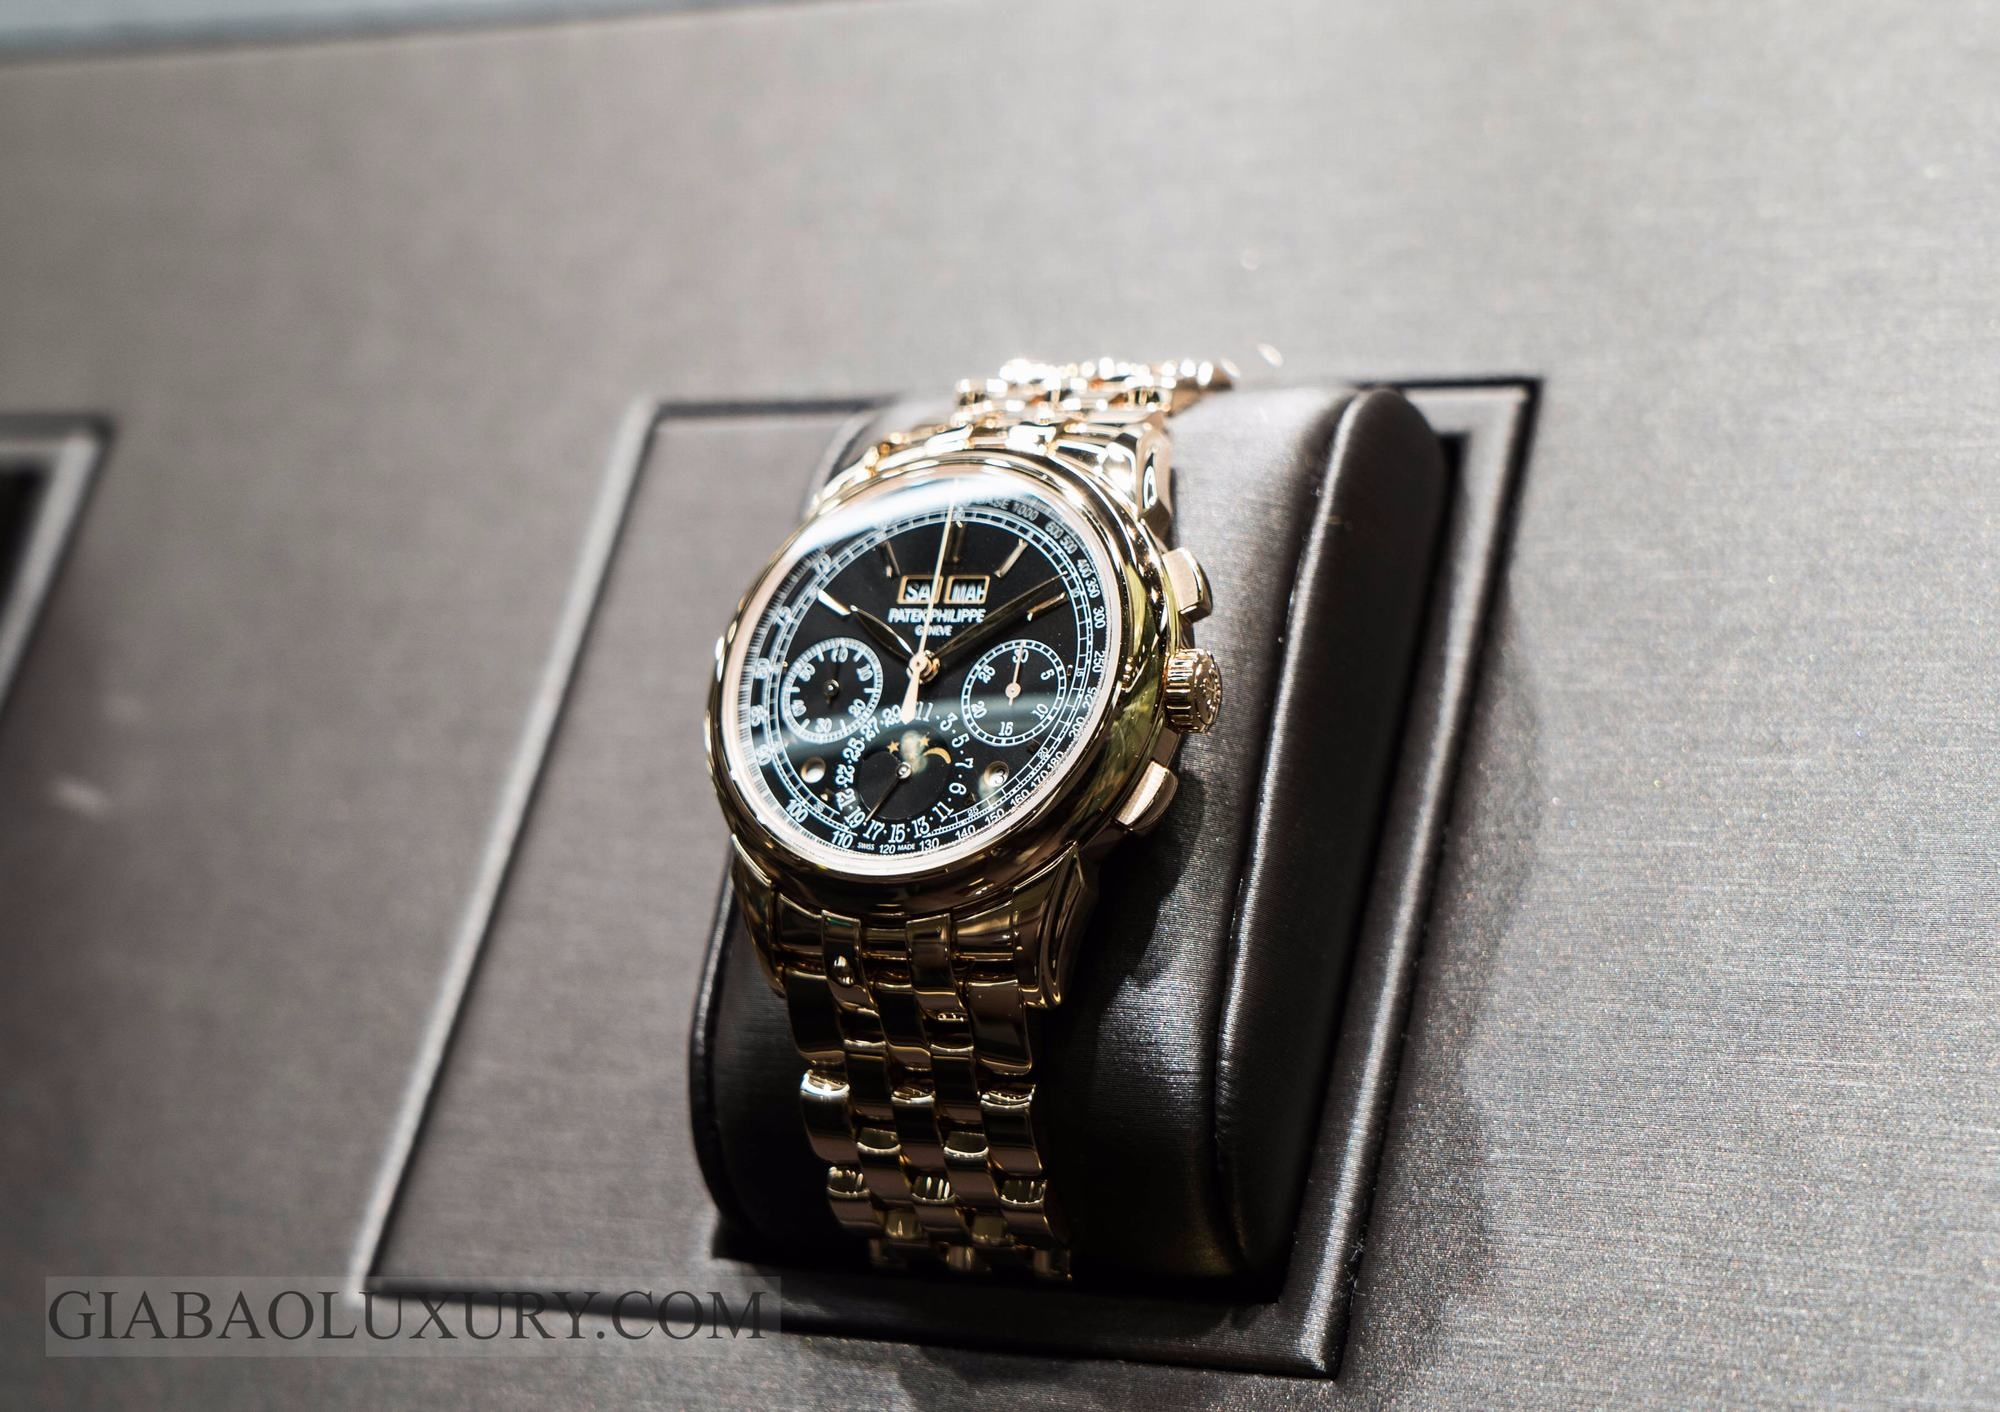 Đồng Hồ Patek Philippe Grand Complication Chronograph Perpetual Calendar